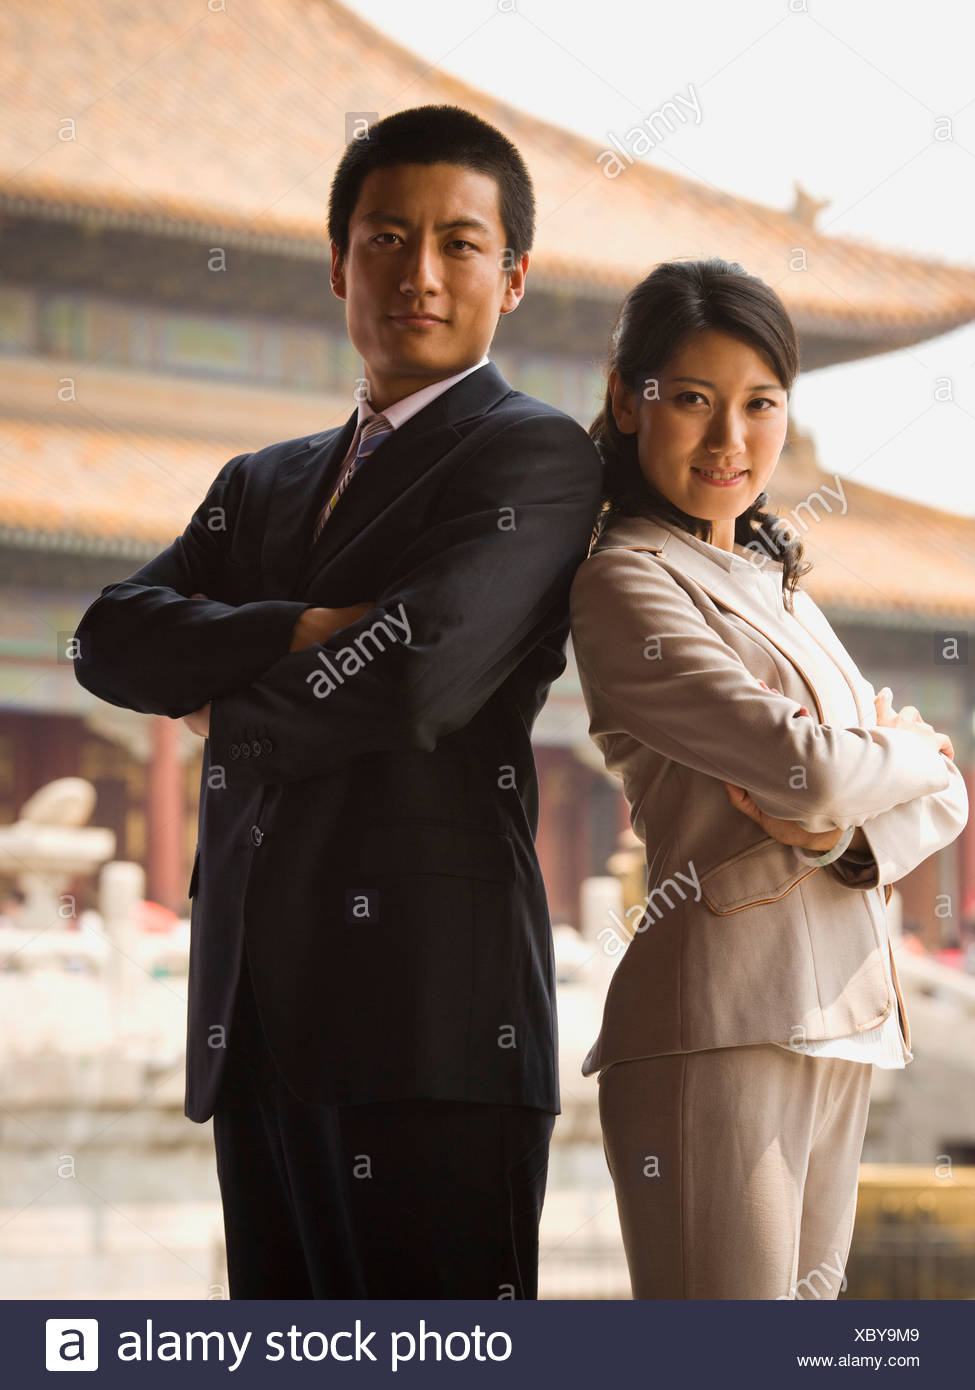 Businessman and woman standing with arms crossed and backs together with pagoda in background - Stock Image